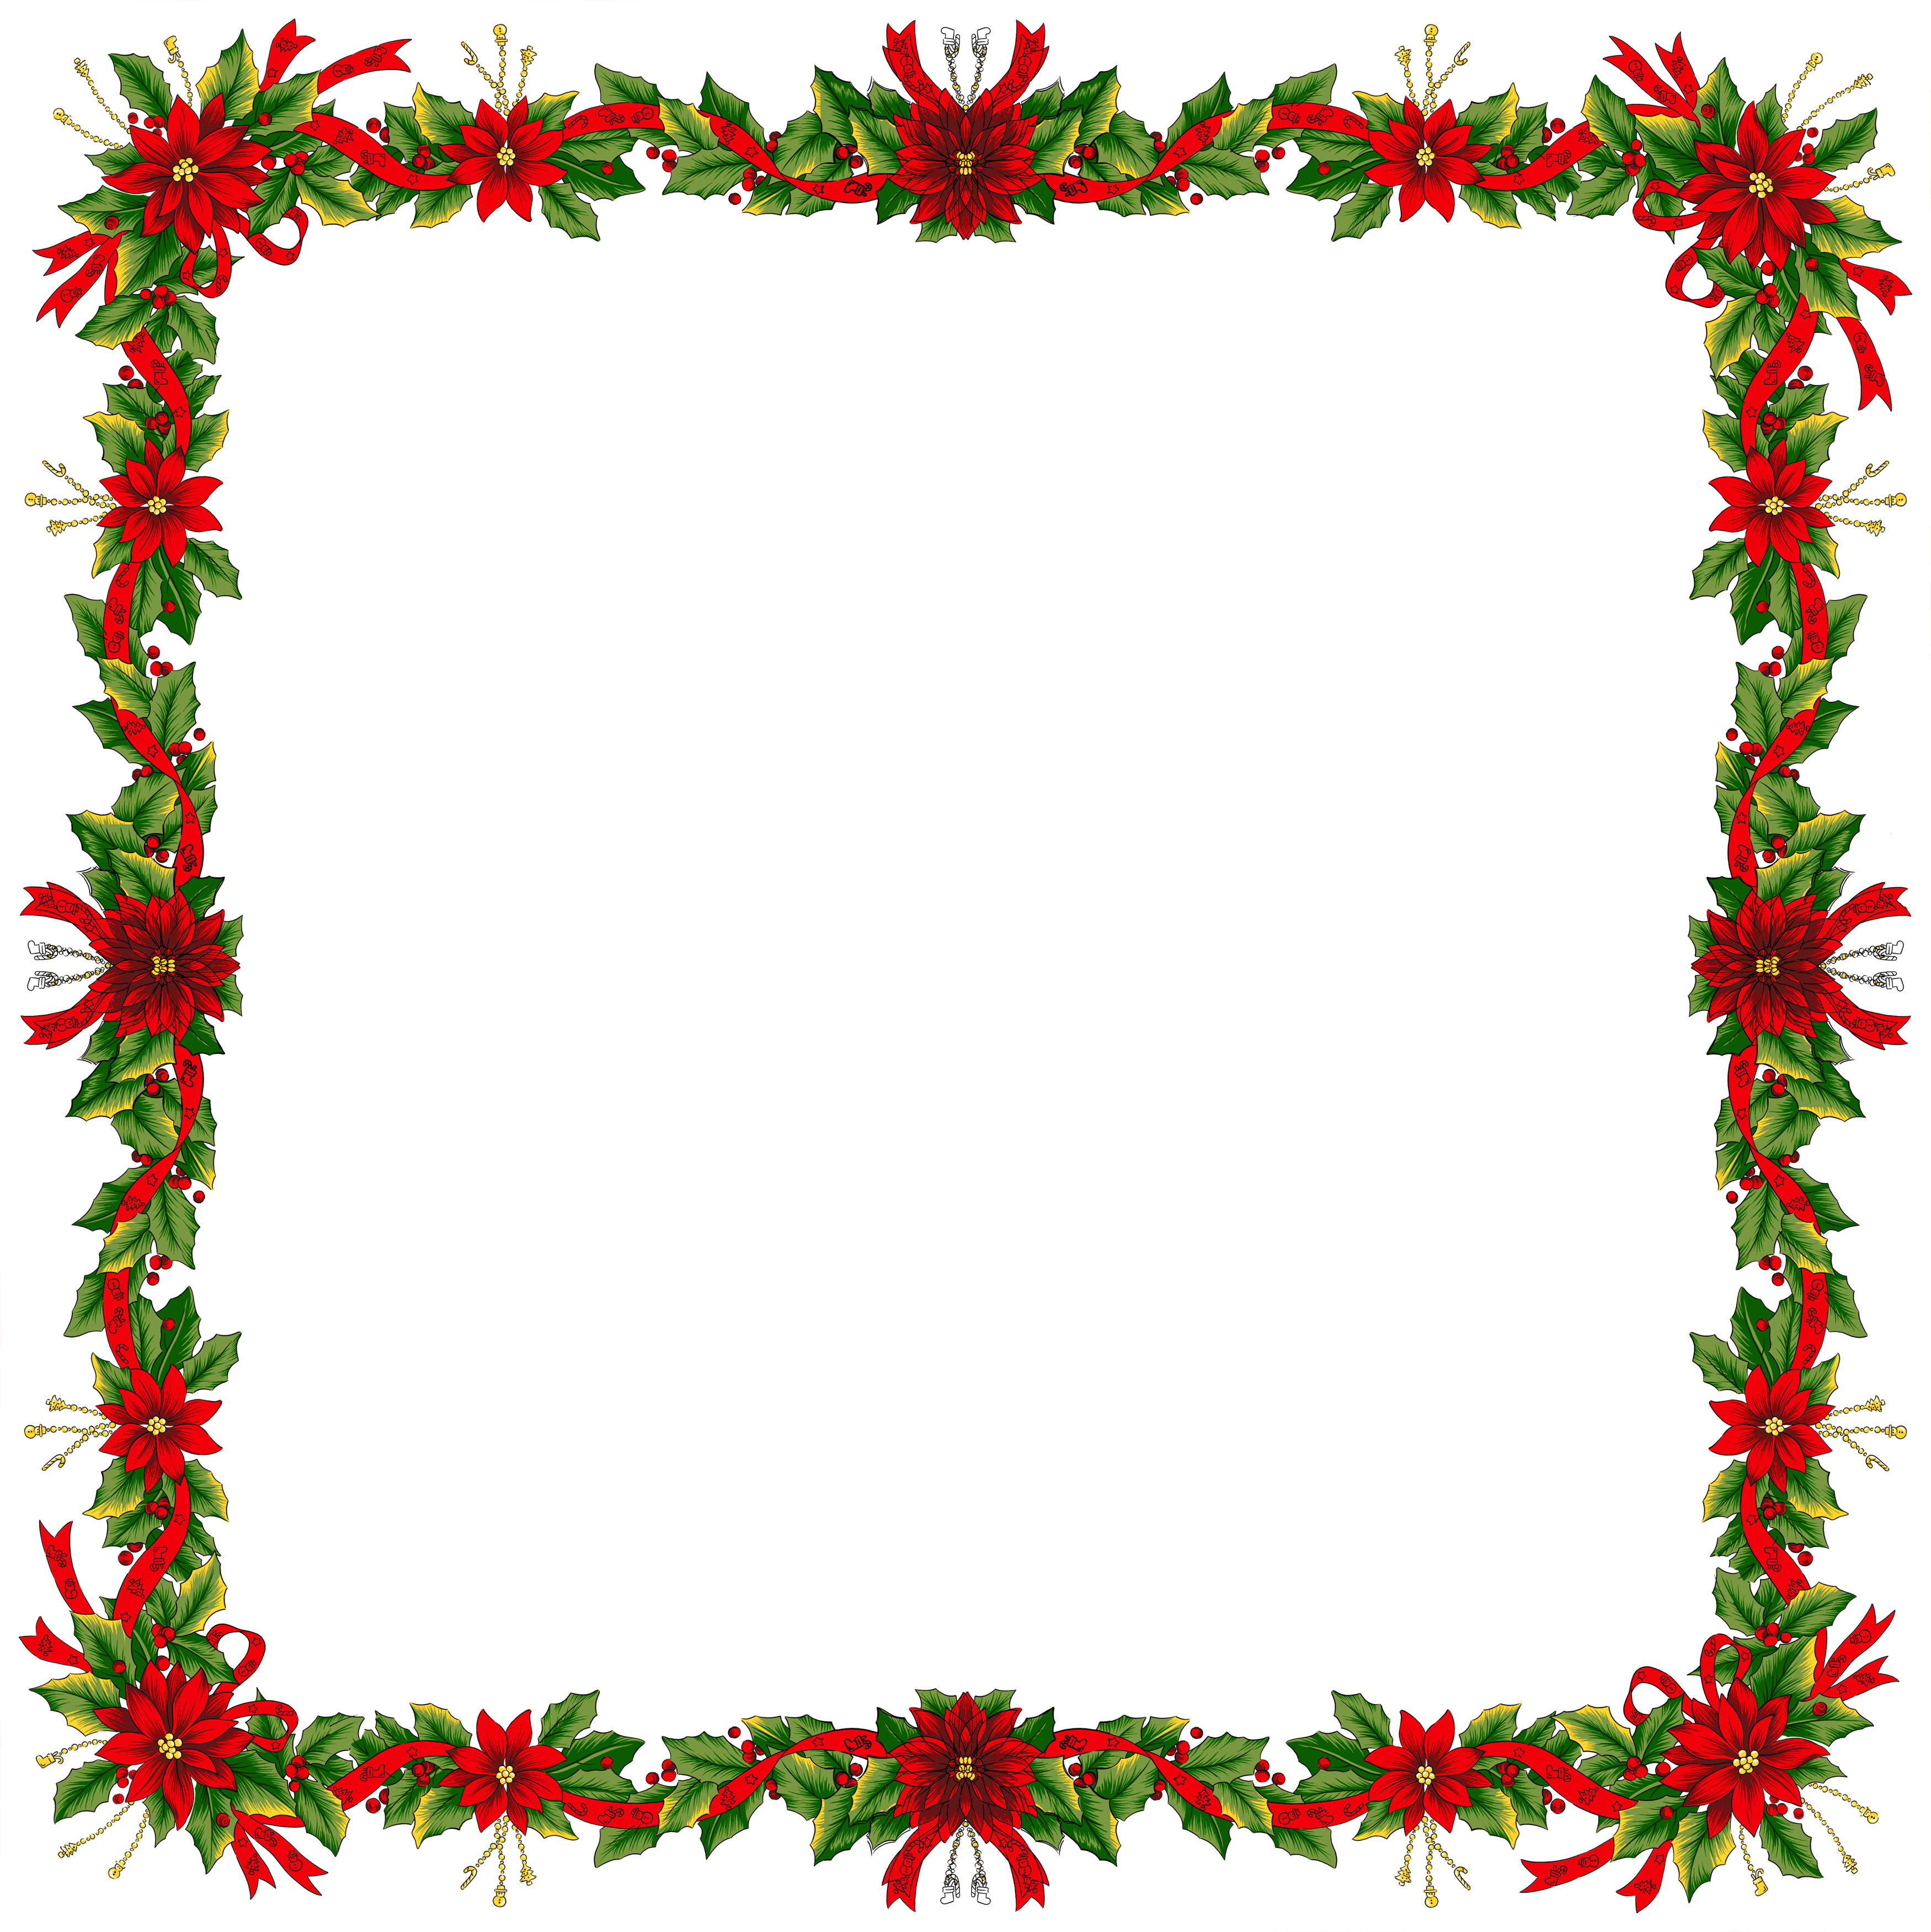 Christmas Wreath Frame Png Images